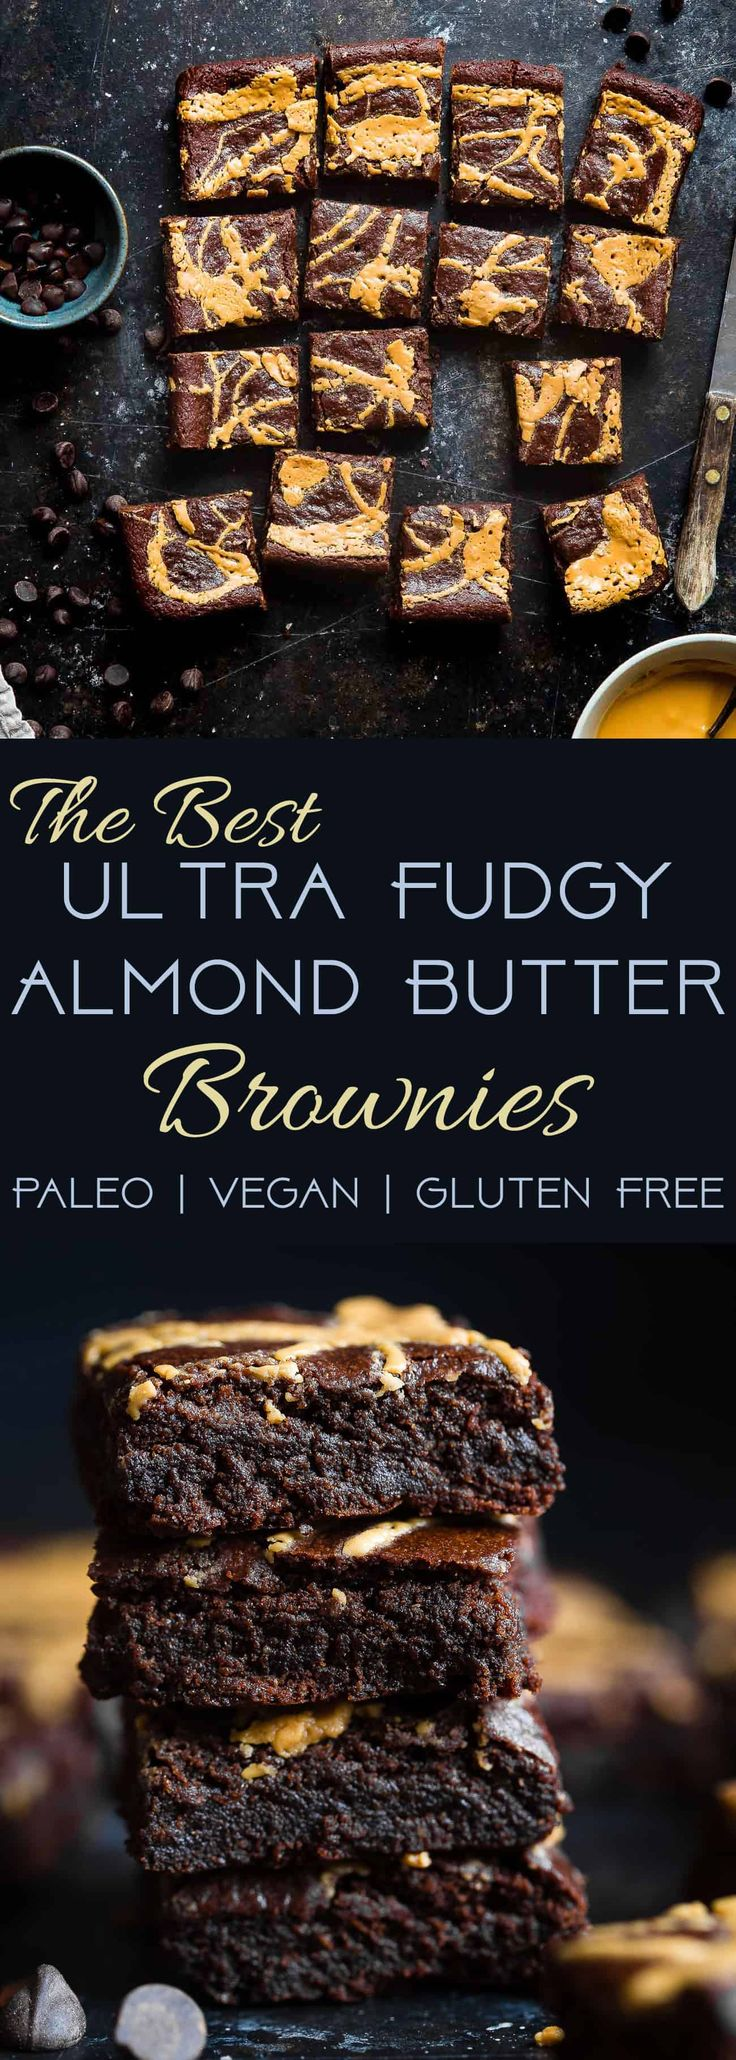 The BEST Paleo Almond Butter Brownies - SO dense, chewy and fudgy that will never believe these are vegan, gluten/grain/dairy/oil free and only 150 calories! Made in one bowl